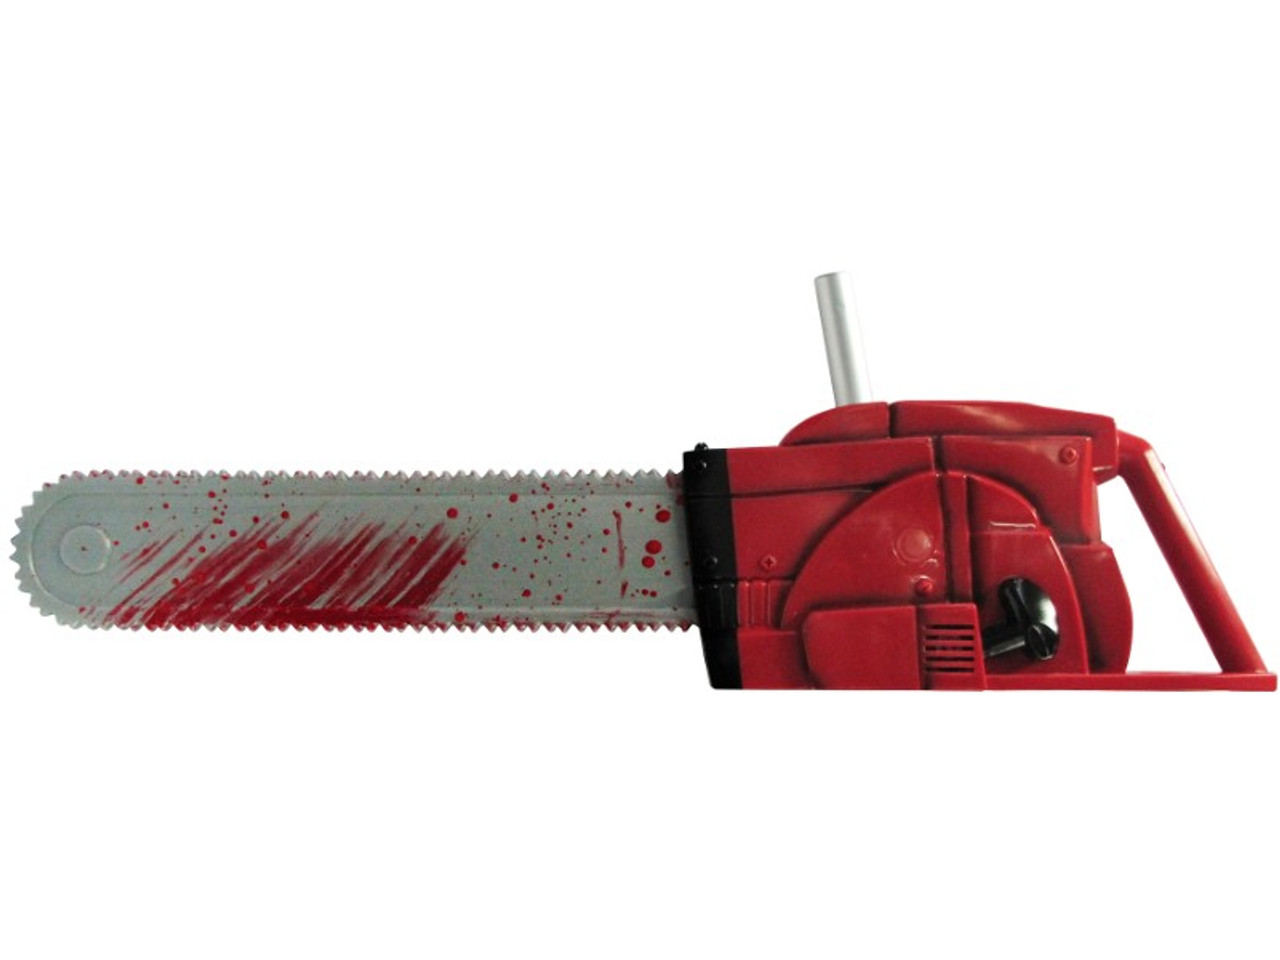 Animated Chainsaw Prop With Sound Best Price At 30 Off